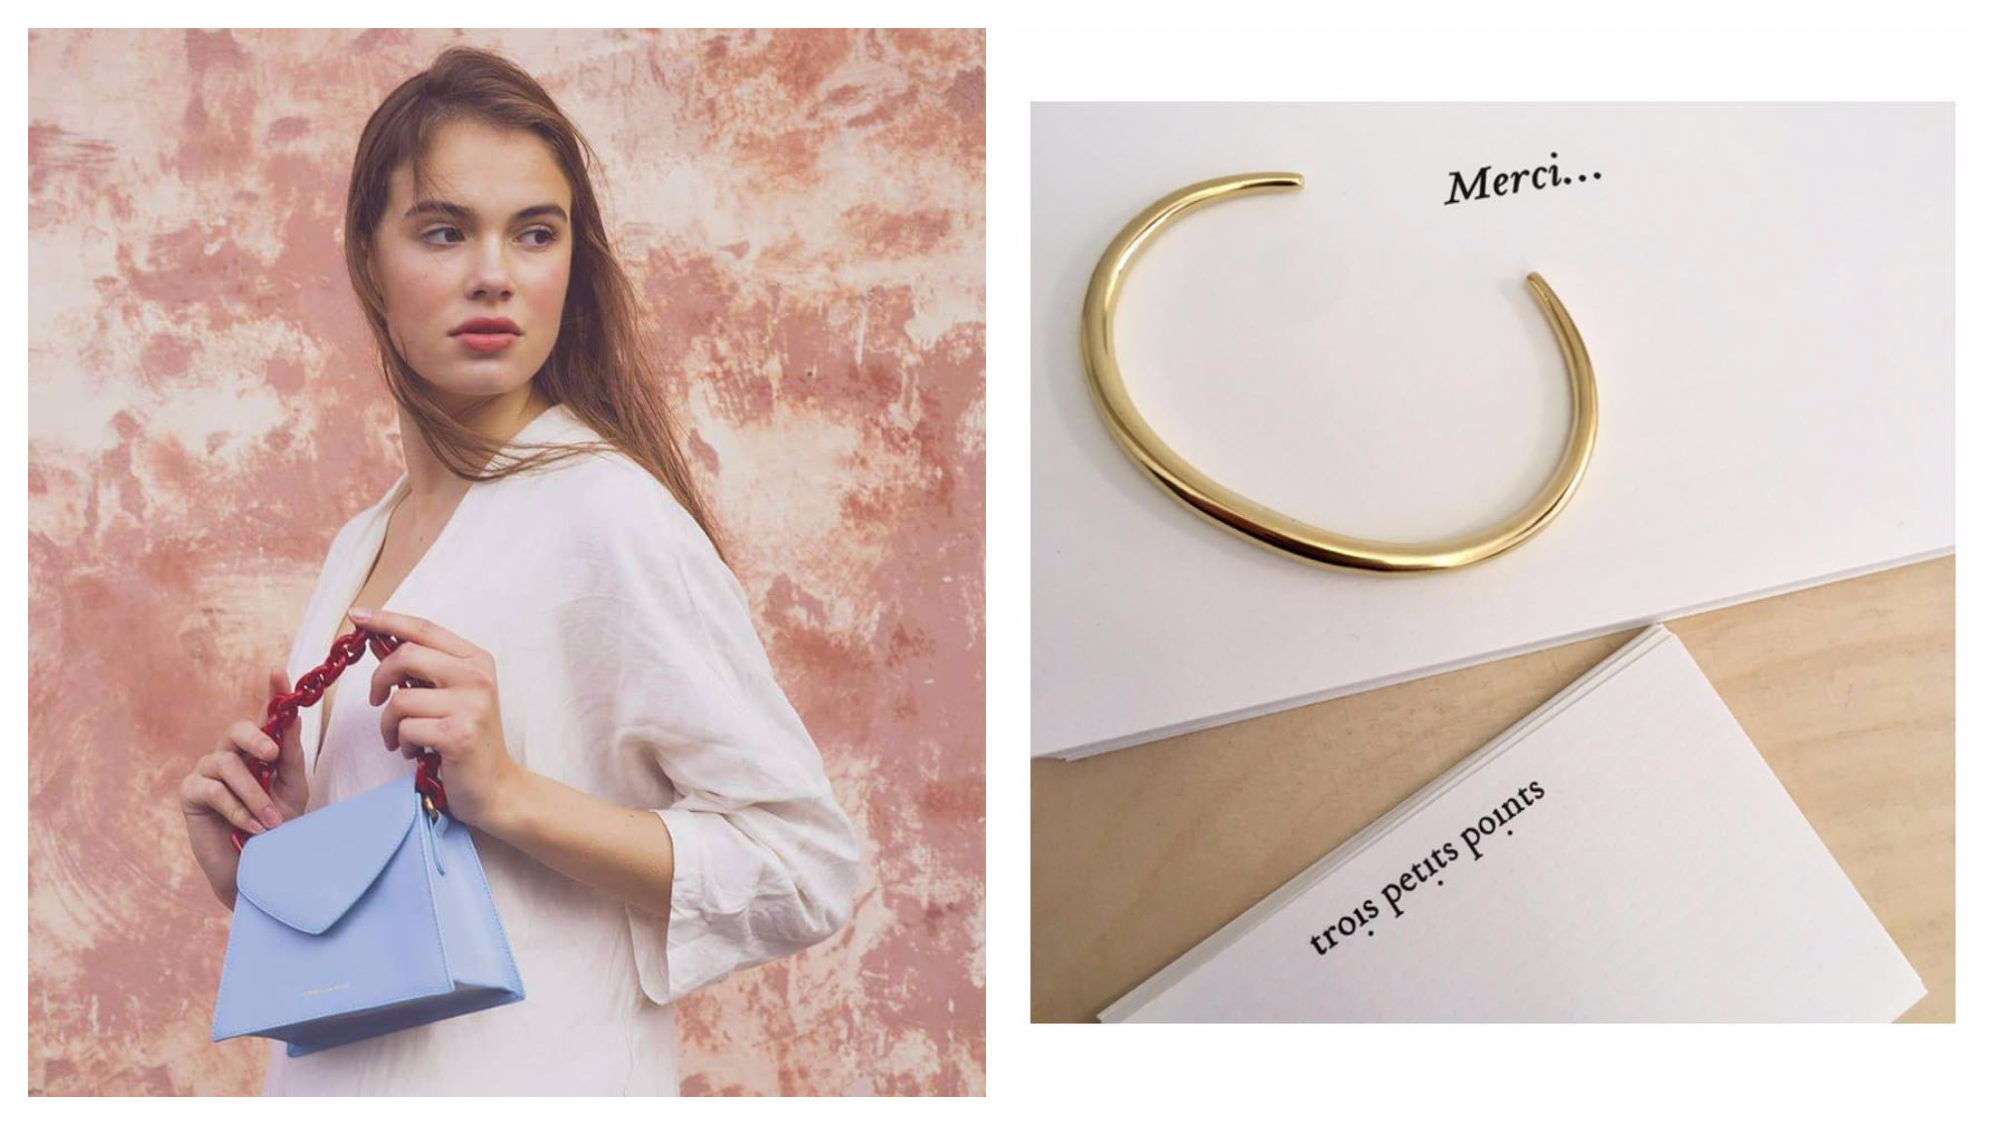 A Tammy and Benjamin powder-blue bag with red chain being held by a model against a terracotta background (left). A gold bracelet on a piece of white paper that reads 'Merci' by Trois Petits Points (right).